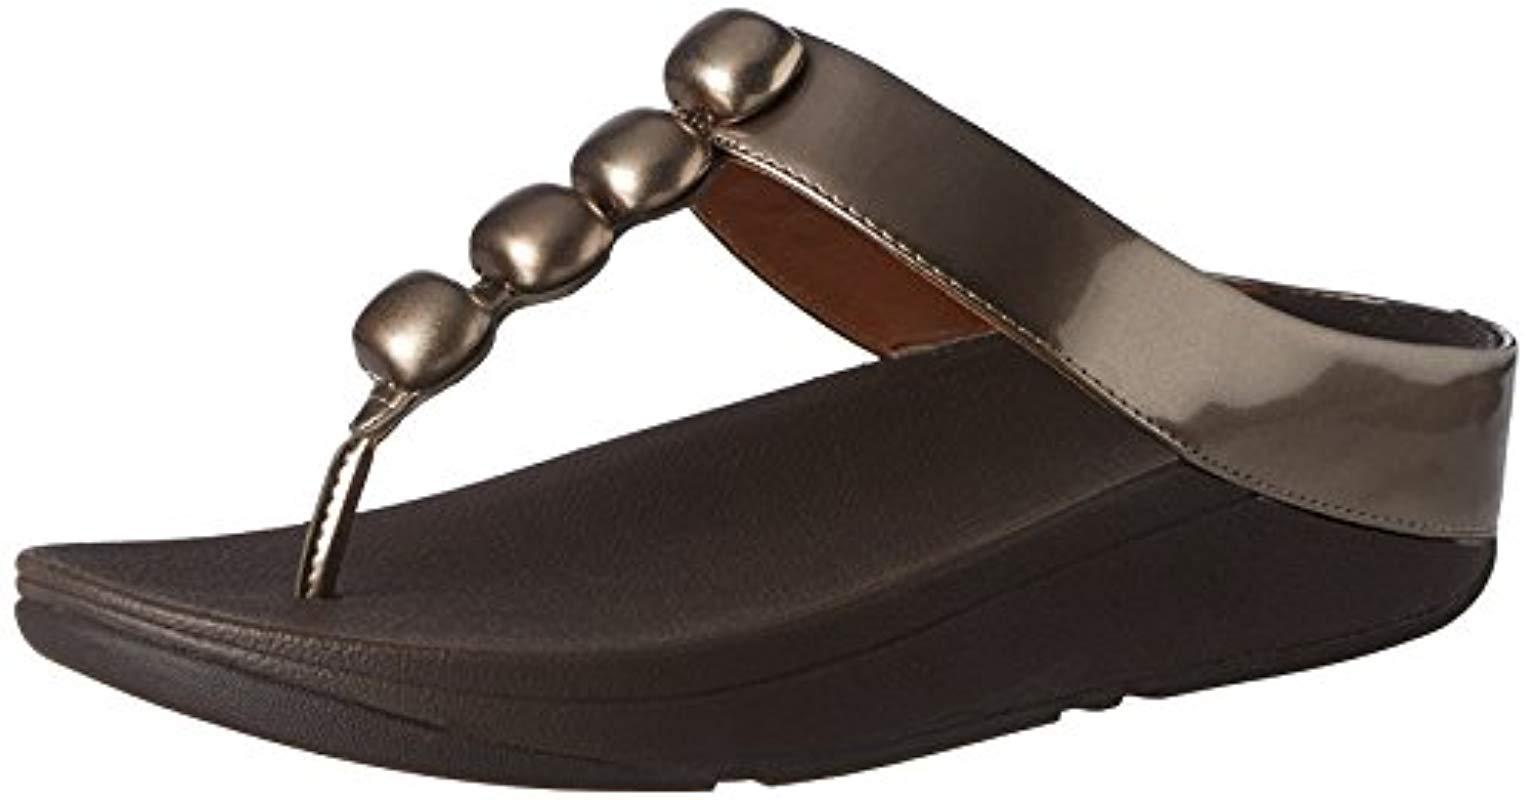 a8fbe44d883e01 Fitflop Rola Platform Sandals in Brown - Lyst